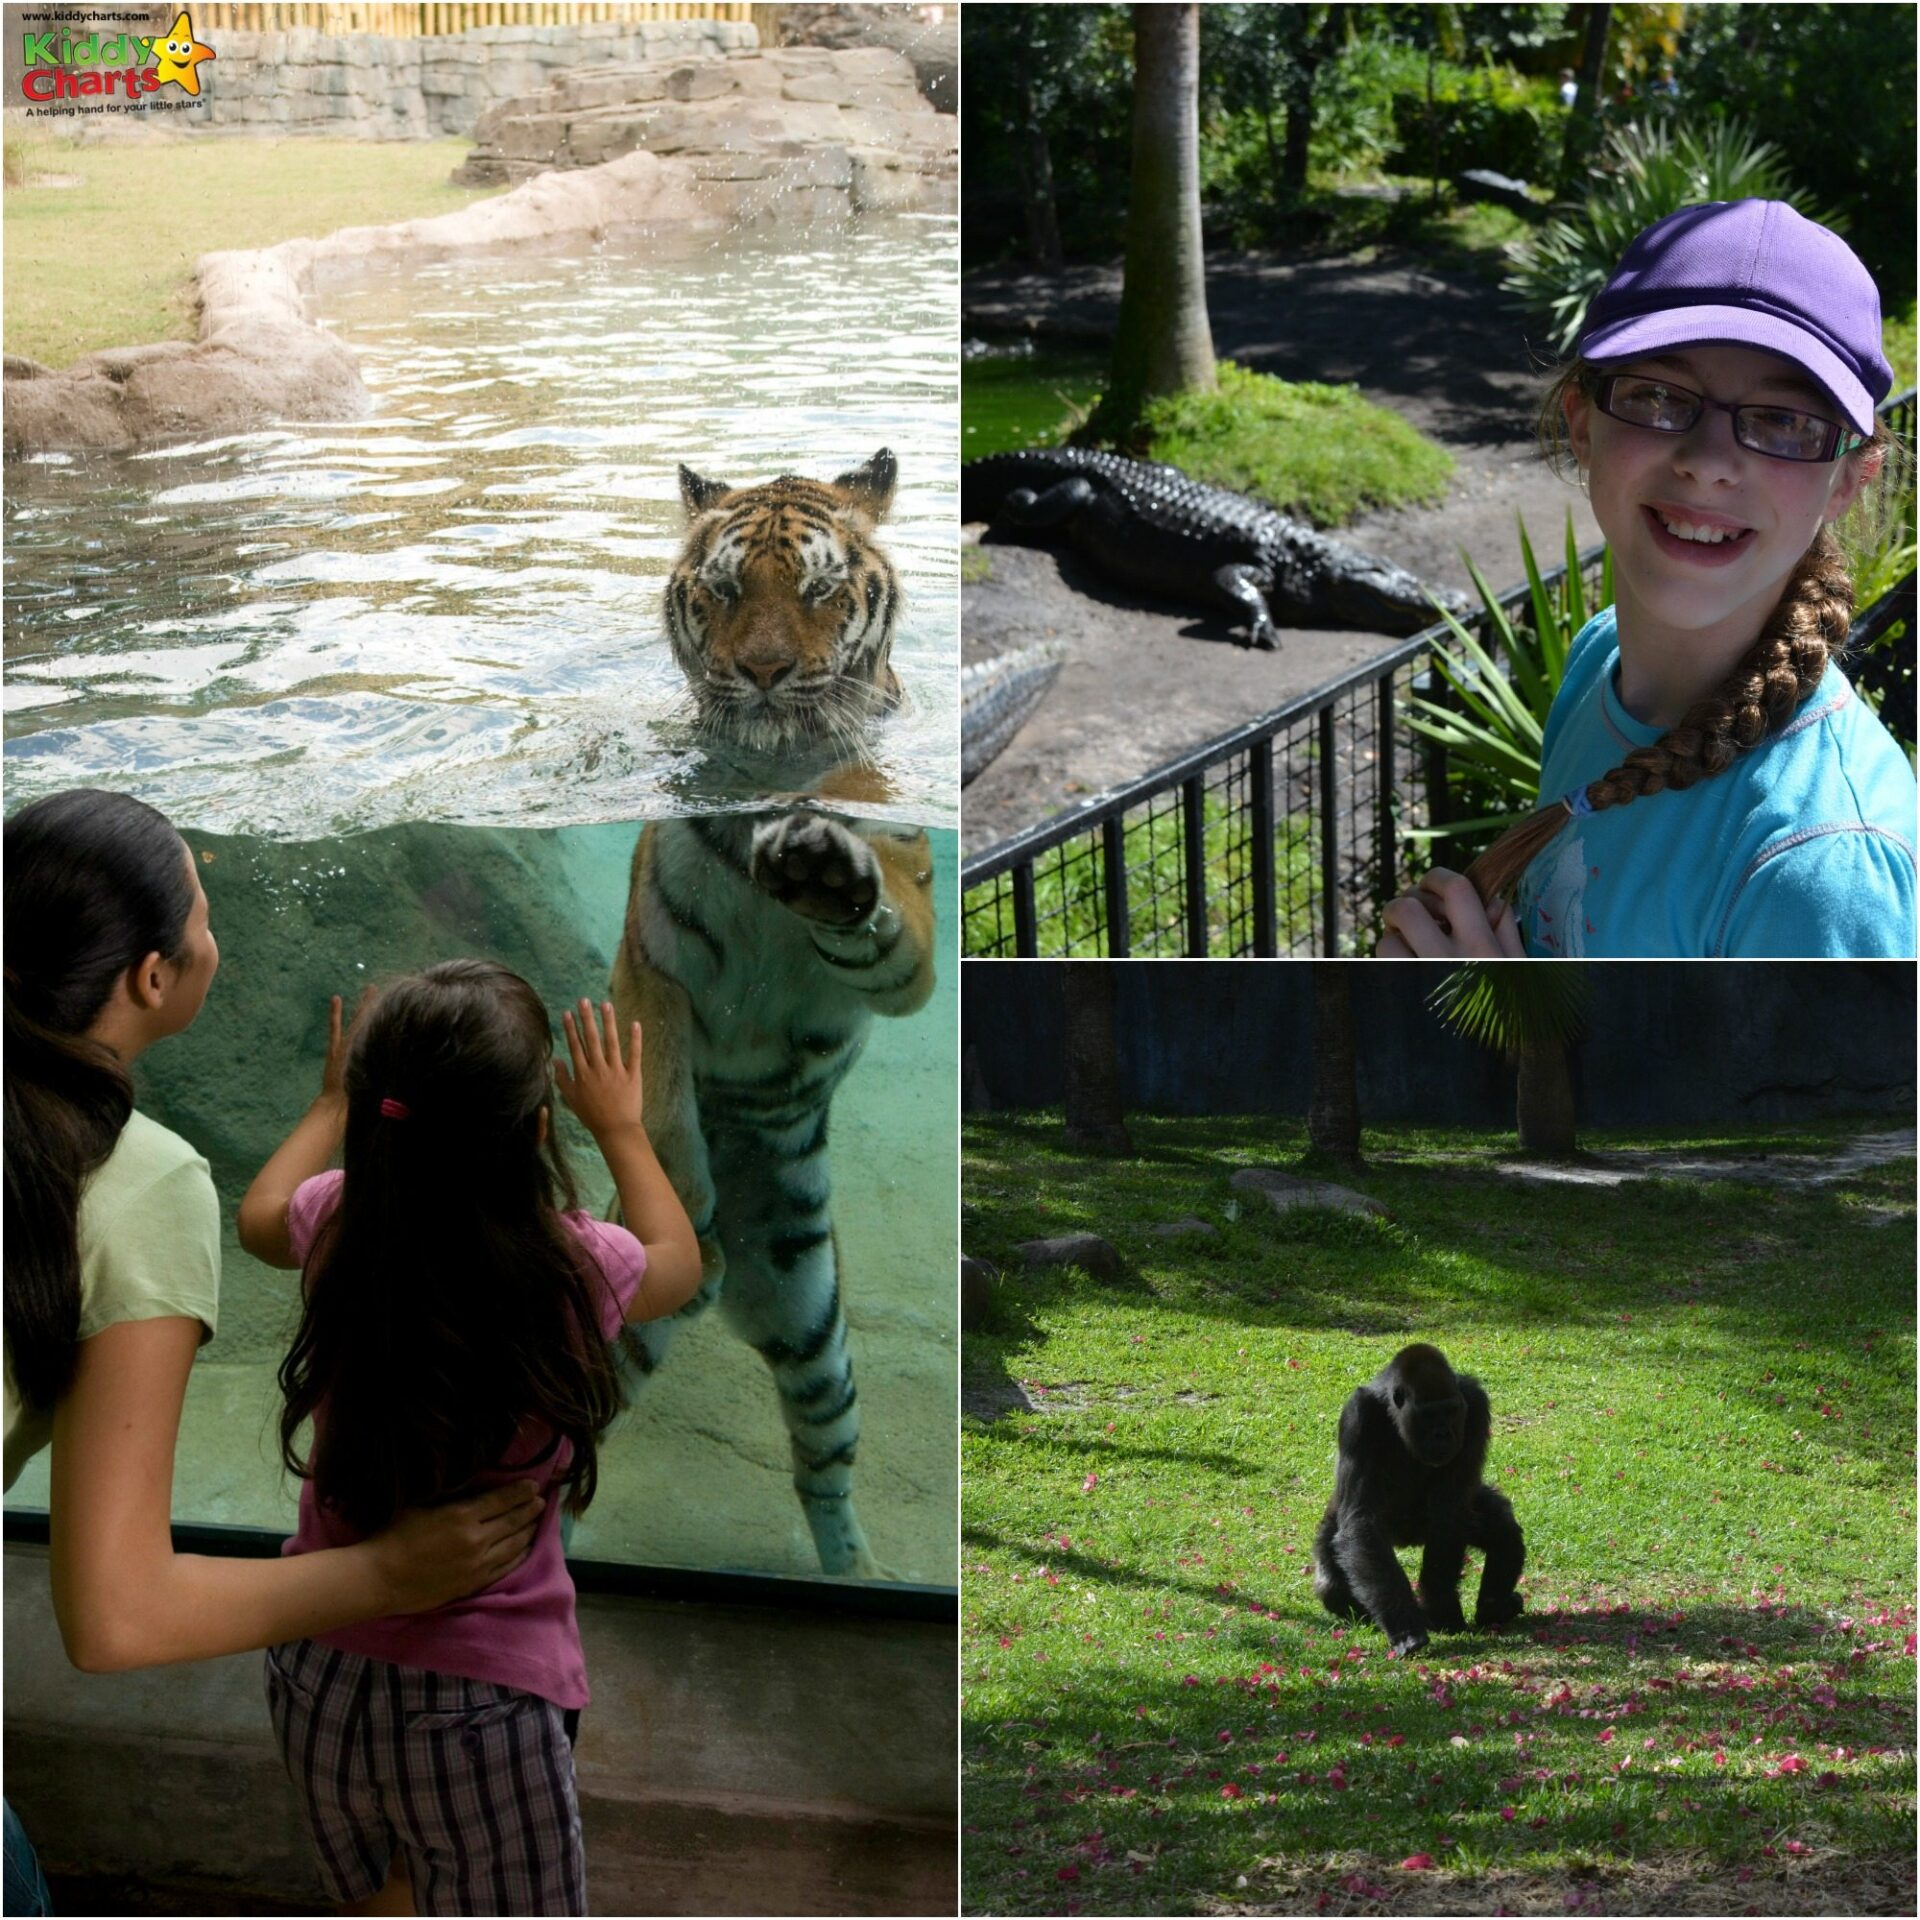 The animals alone are well worth a visit to Busch Gardens Tampa - why not check out the other reasons on my site?